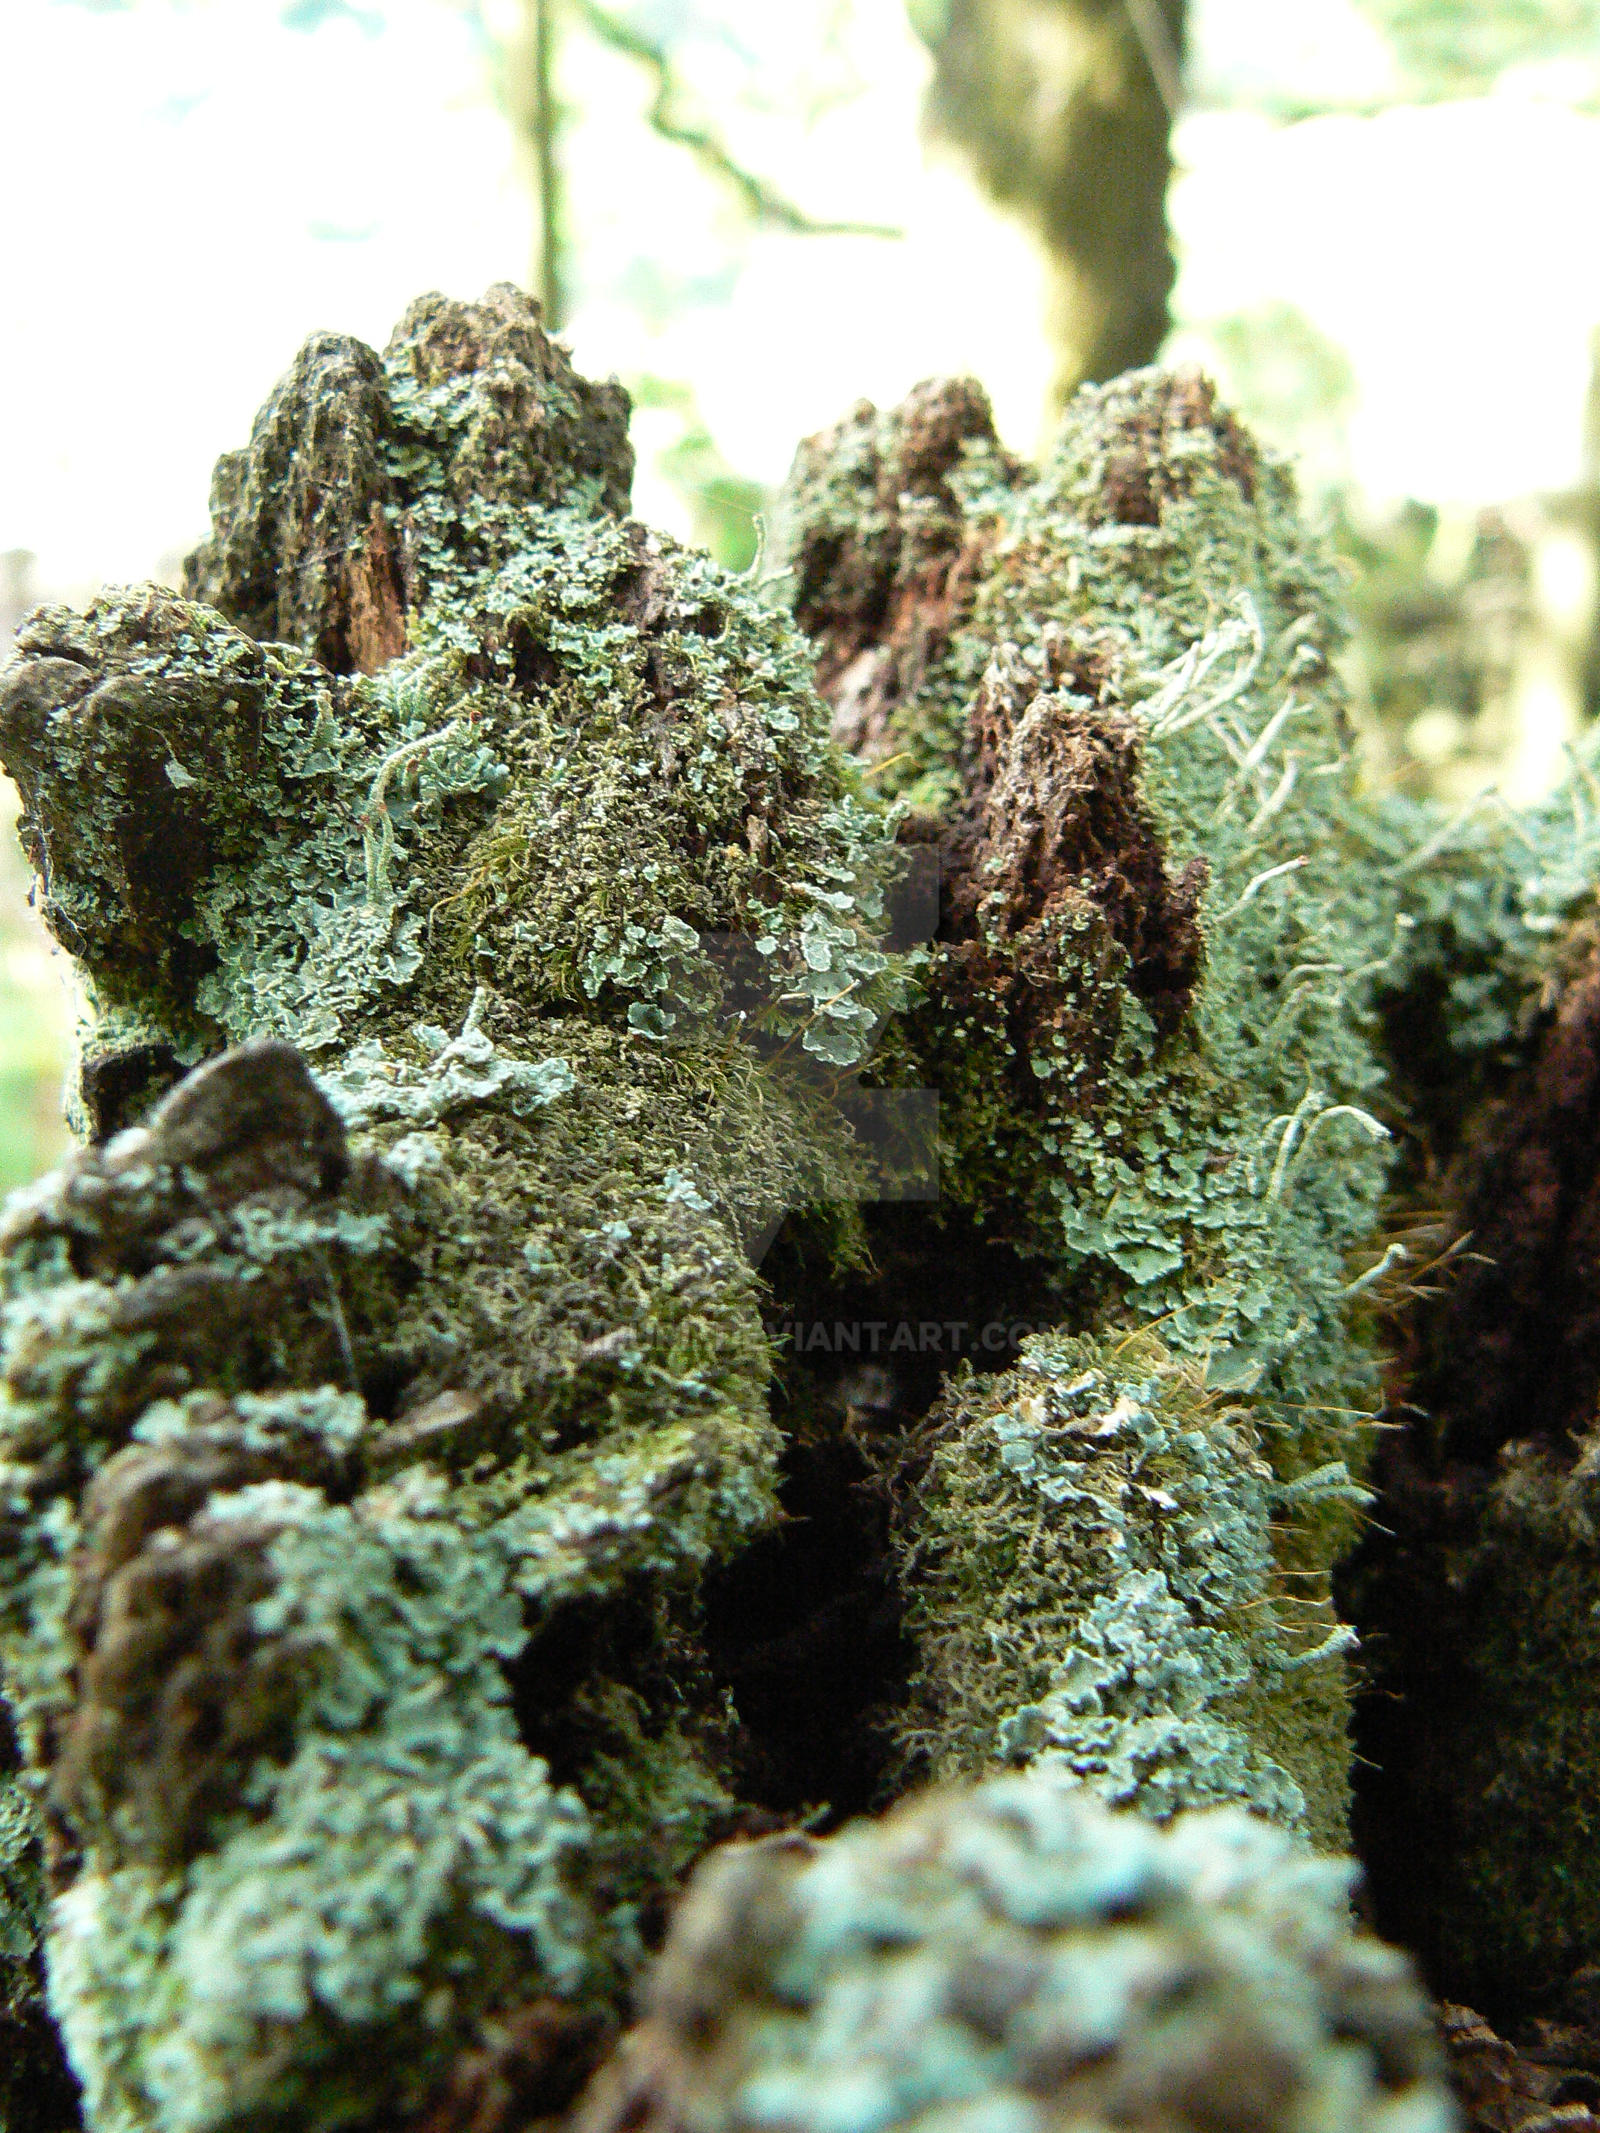 Lichen covered tree stump by mburl on deviantart for What is a tree trunk covered with 4 letters